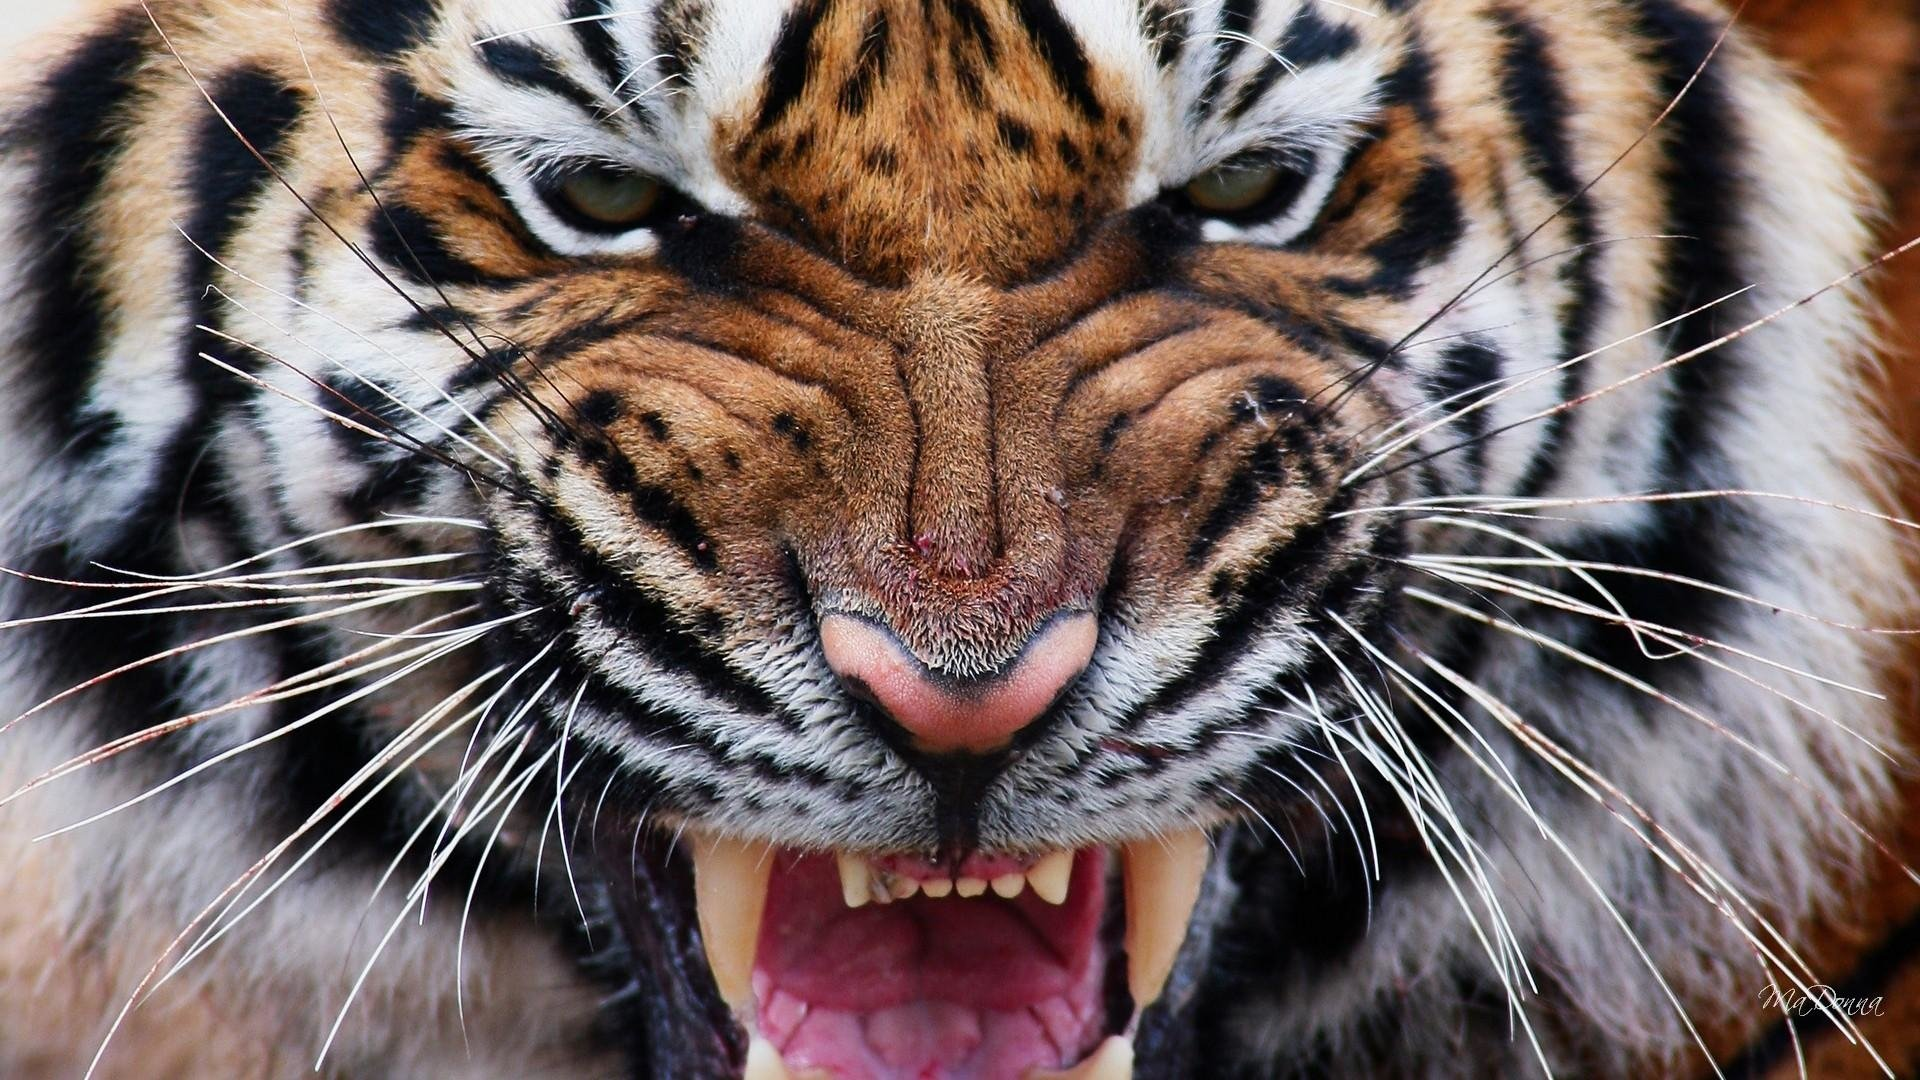 Animal - Tiger  Animal Face Close-up Wallpaper